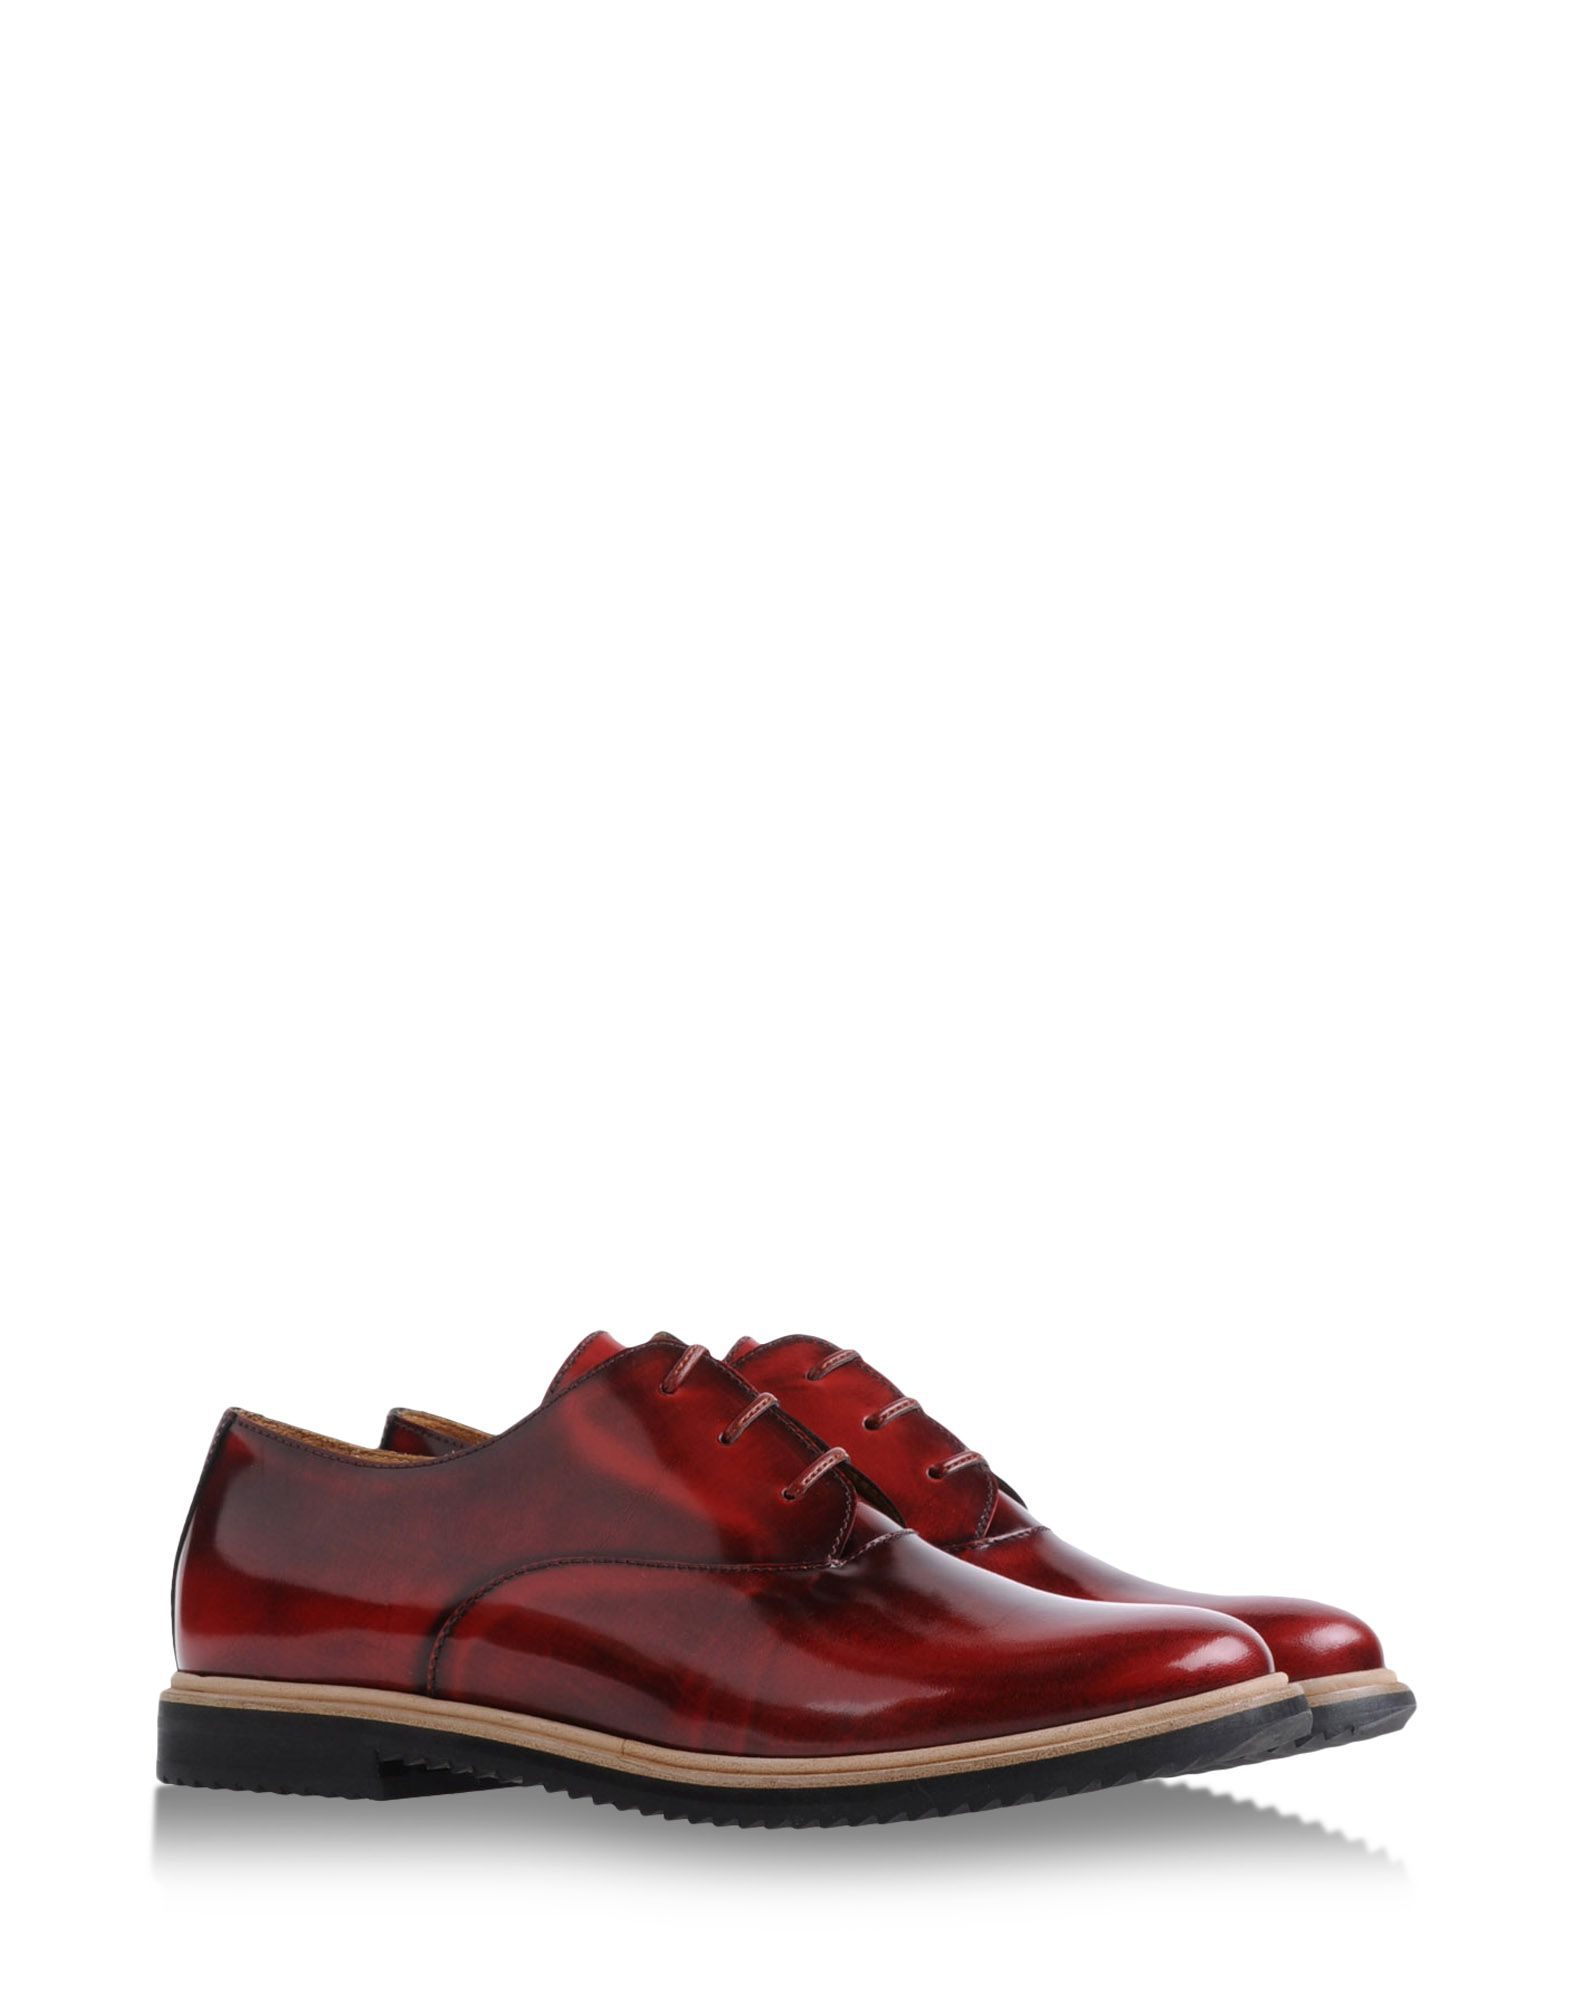 Mm6 By Maison Martin Margiela Oxfords Brogues in Red